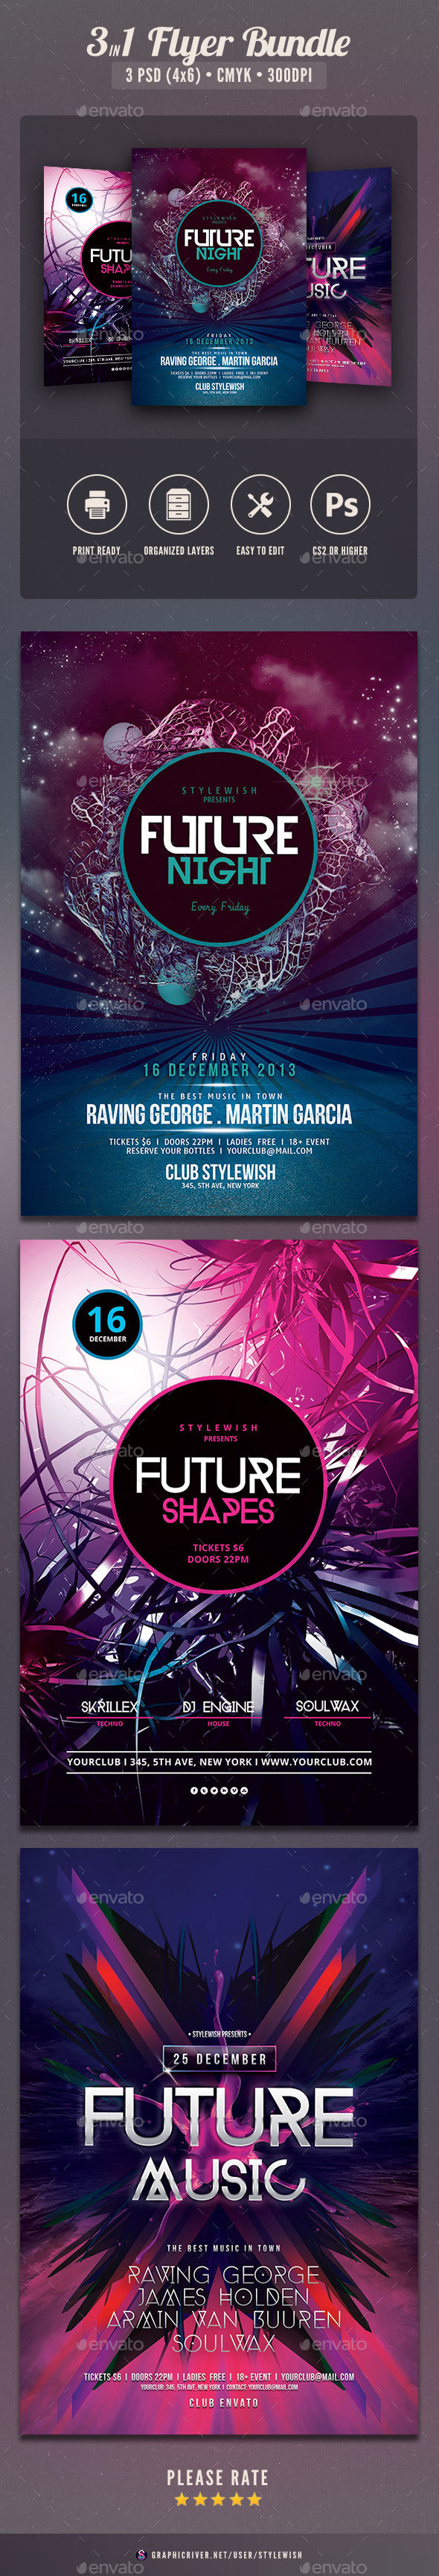 Future Party Flyer Bundle Vol3 - Clubs & Parties Events